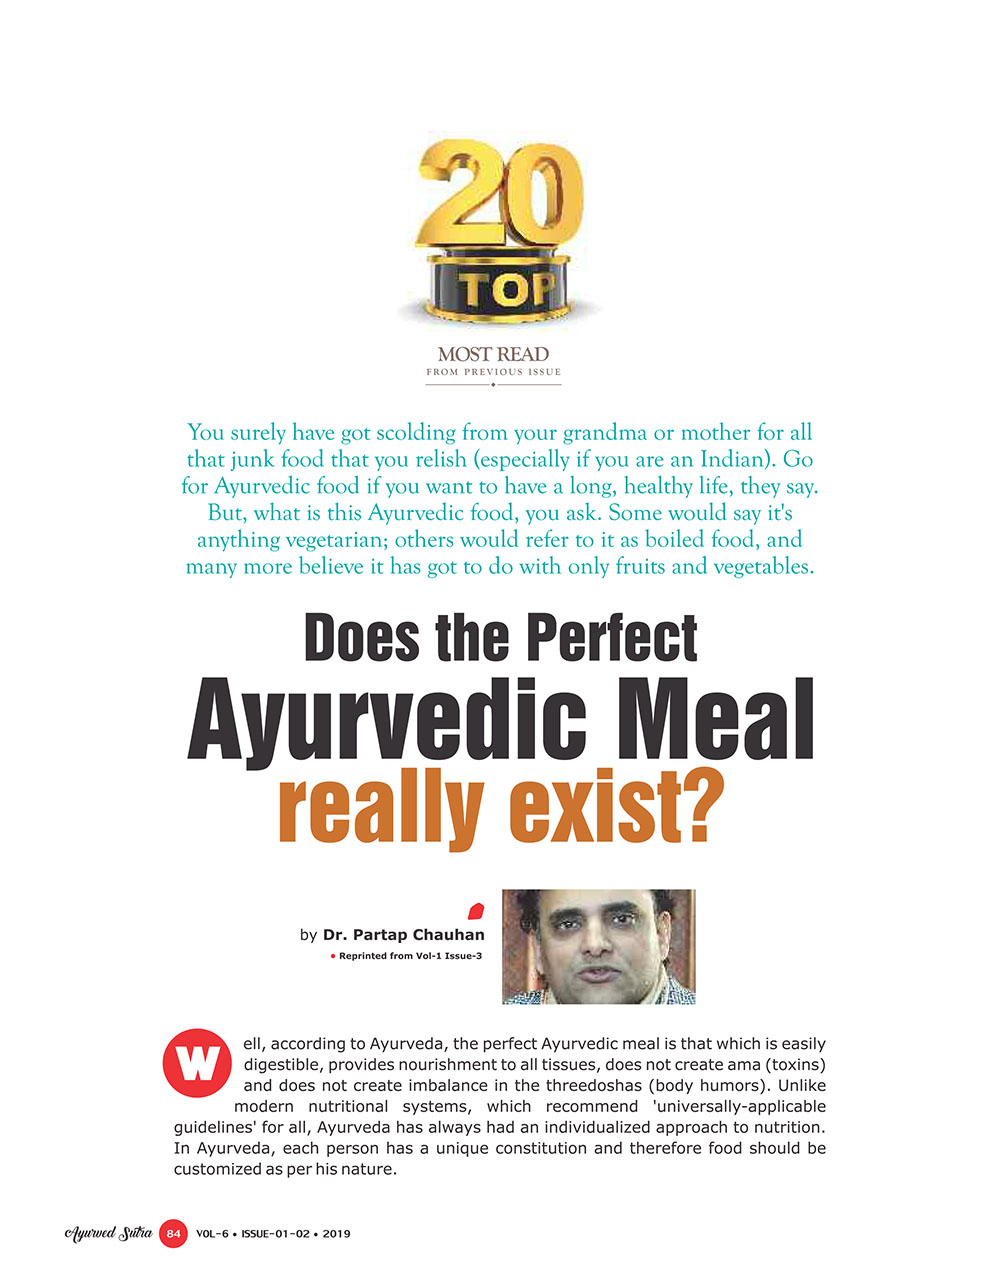 Ayurvedsutra Vol 06 issue 01 02 86 - Does the Perfect Ayurvedic Meal really exist?